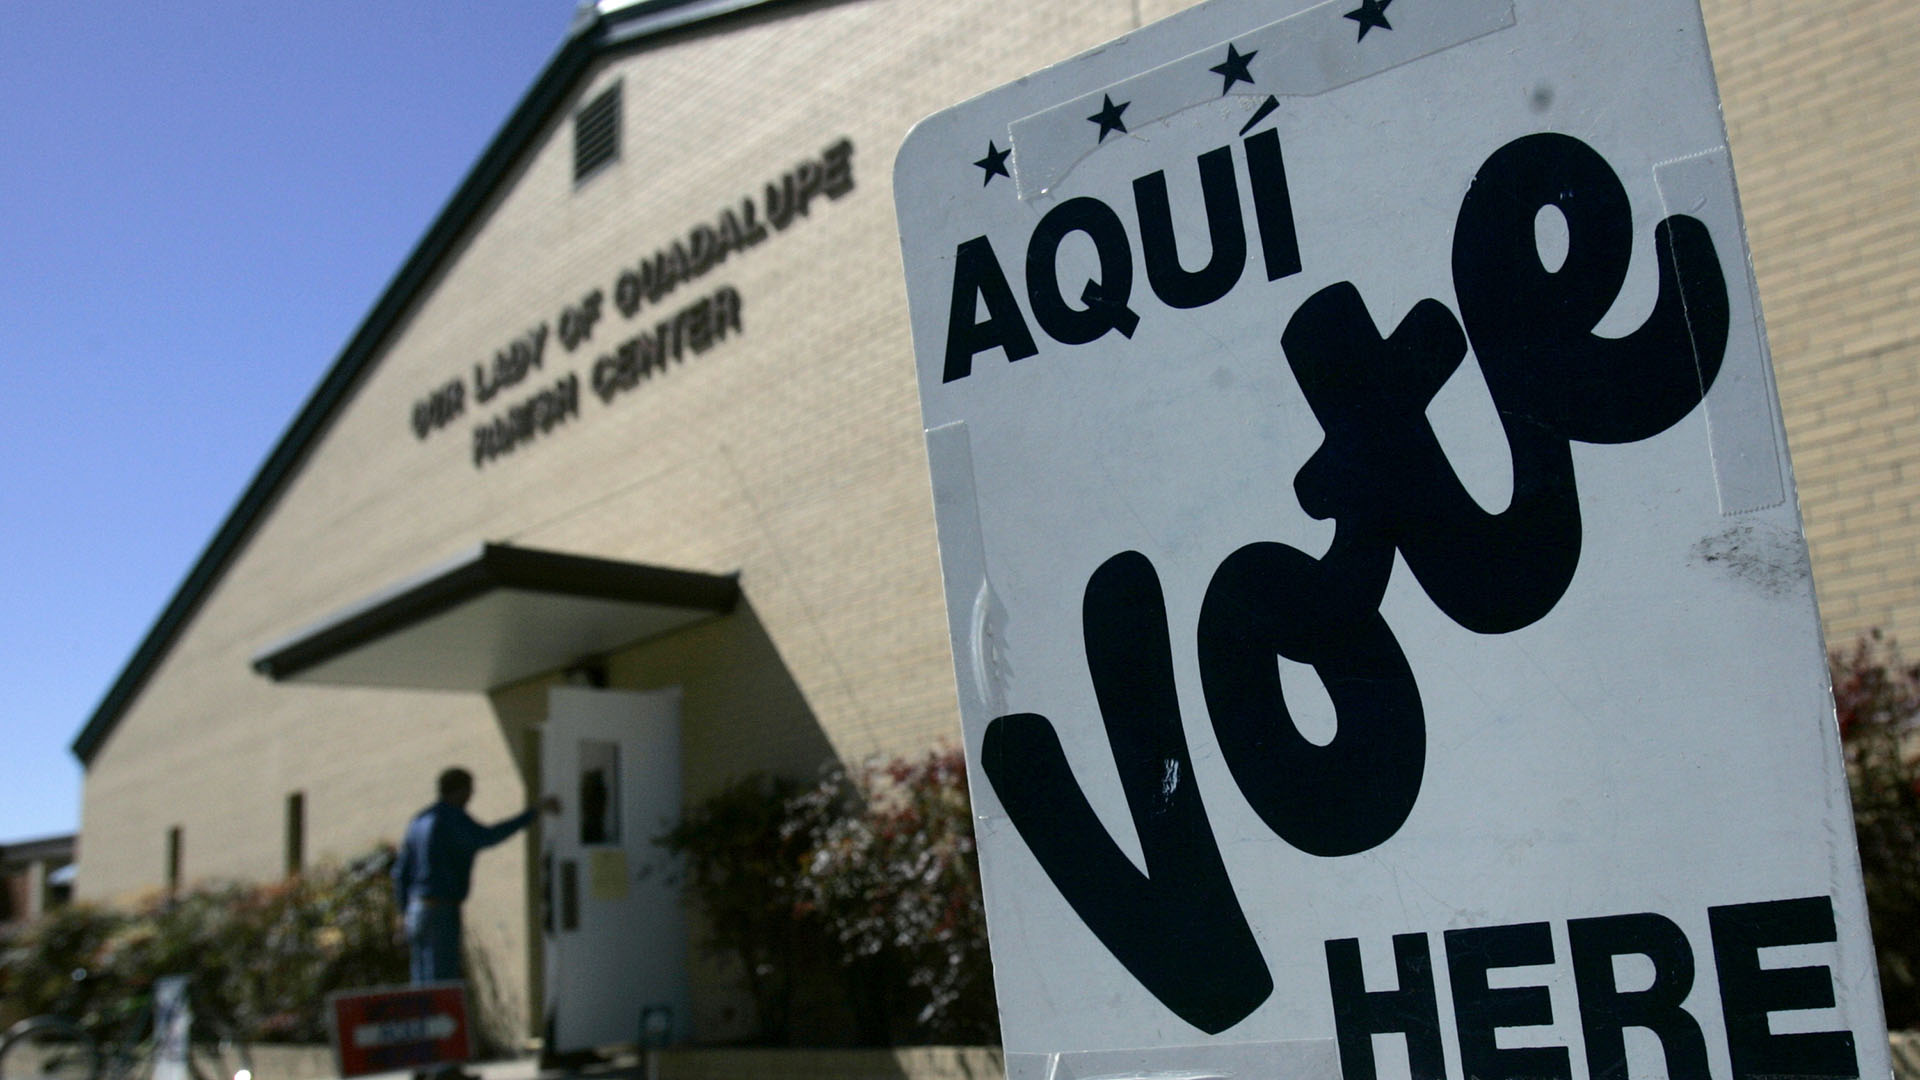 Conservatives file voter registration lawsuits; liberals say it's blocking votes